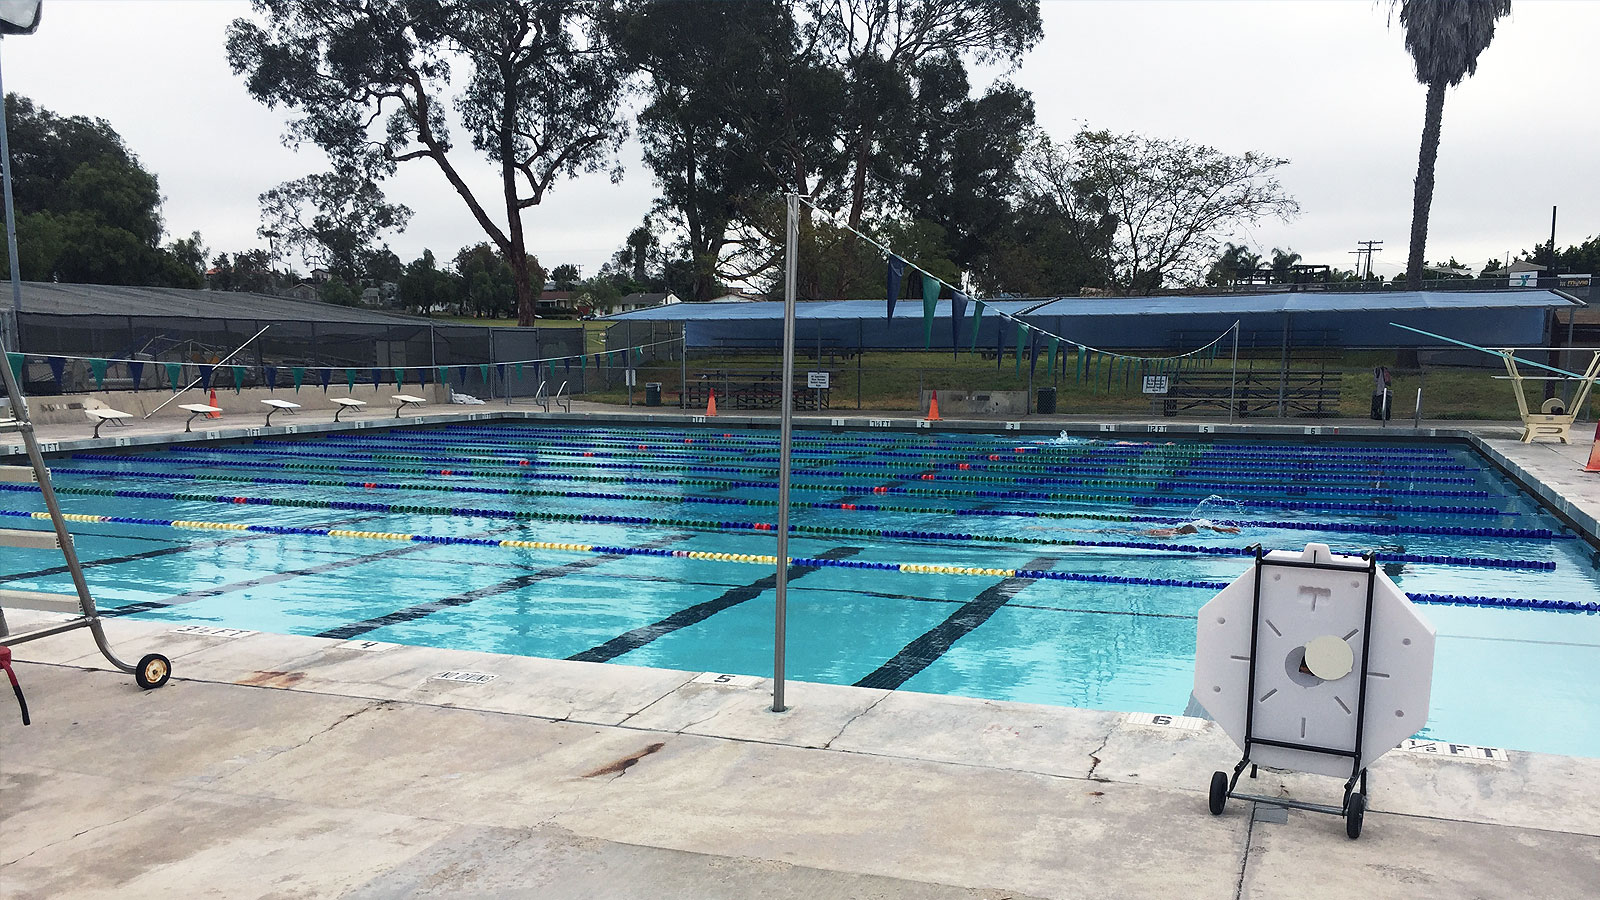 Pool Locations   Parks & Recreation   City of San Diego